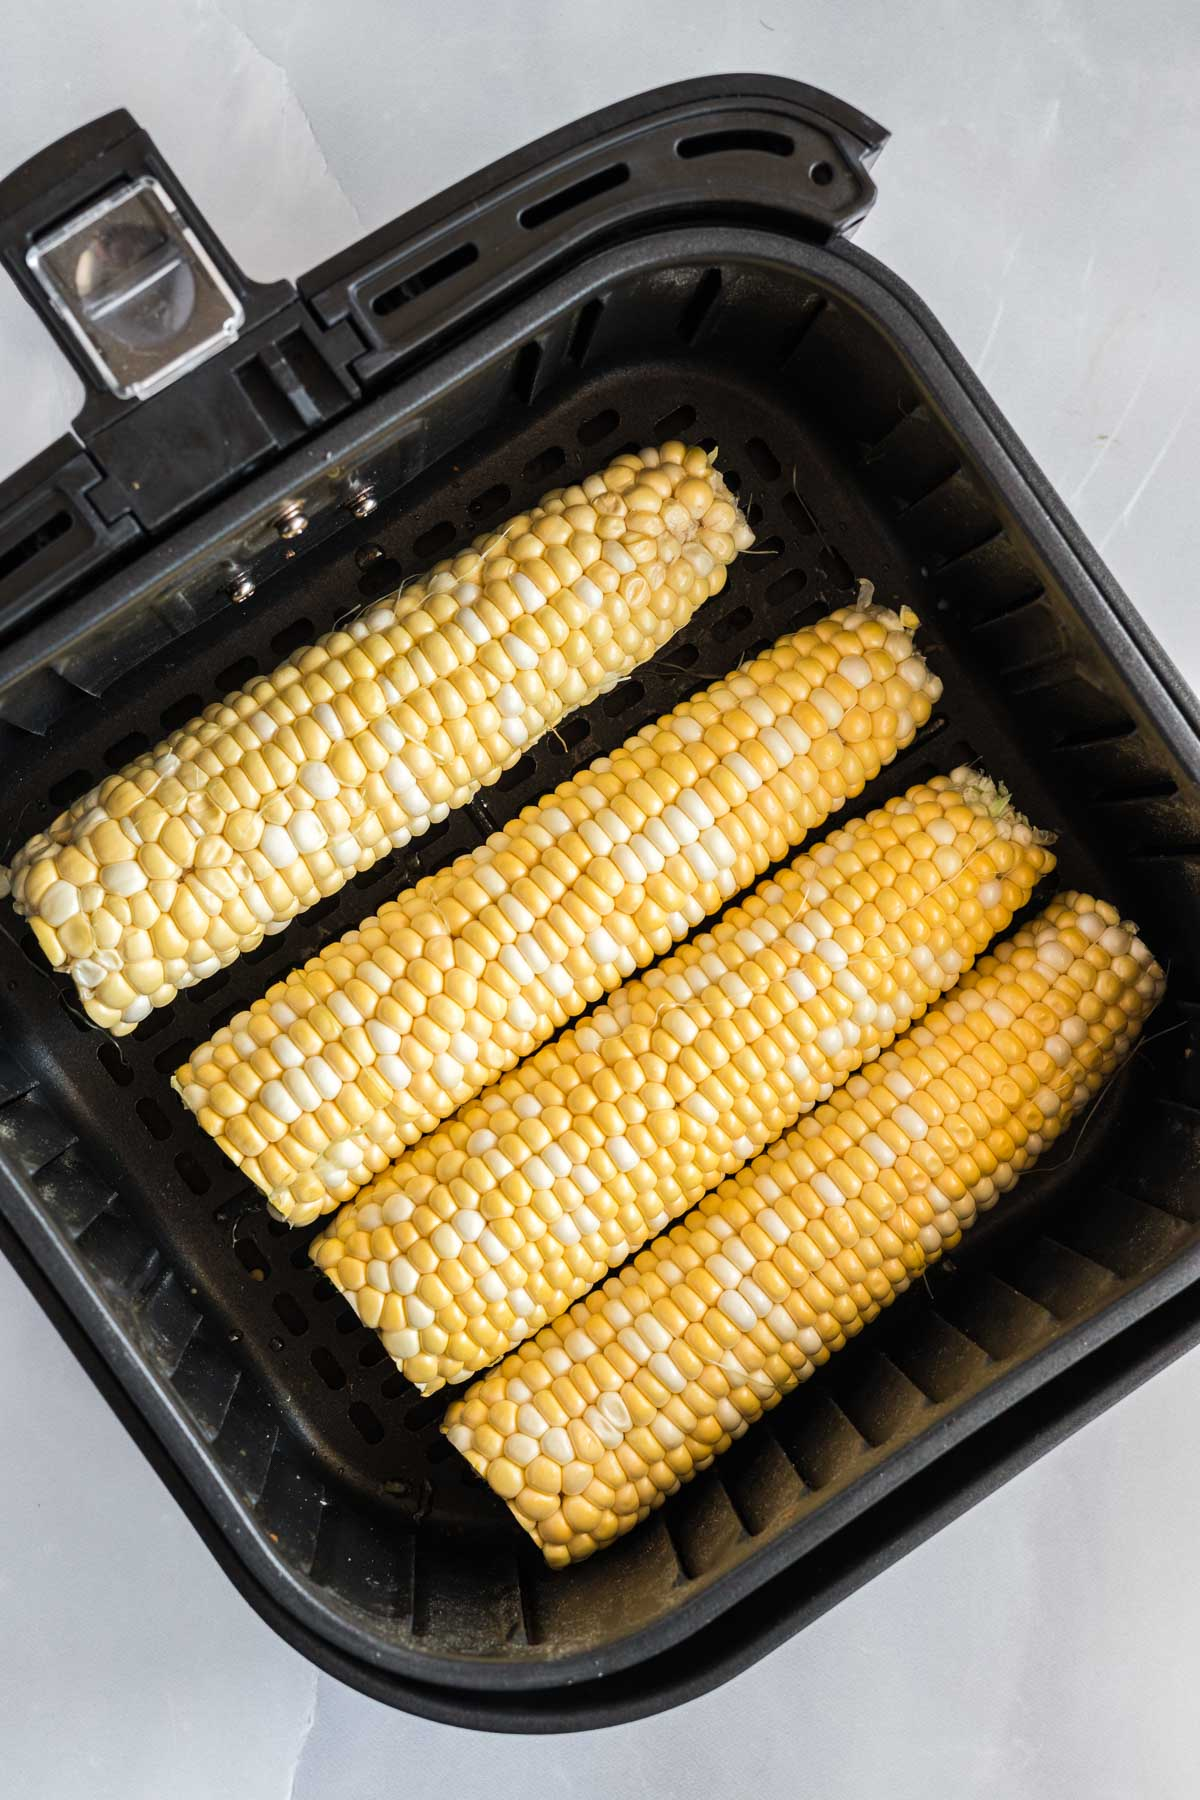 Raw corn on the cob in an air fryer basket.